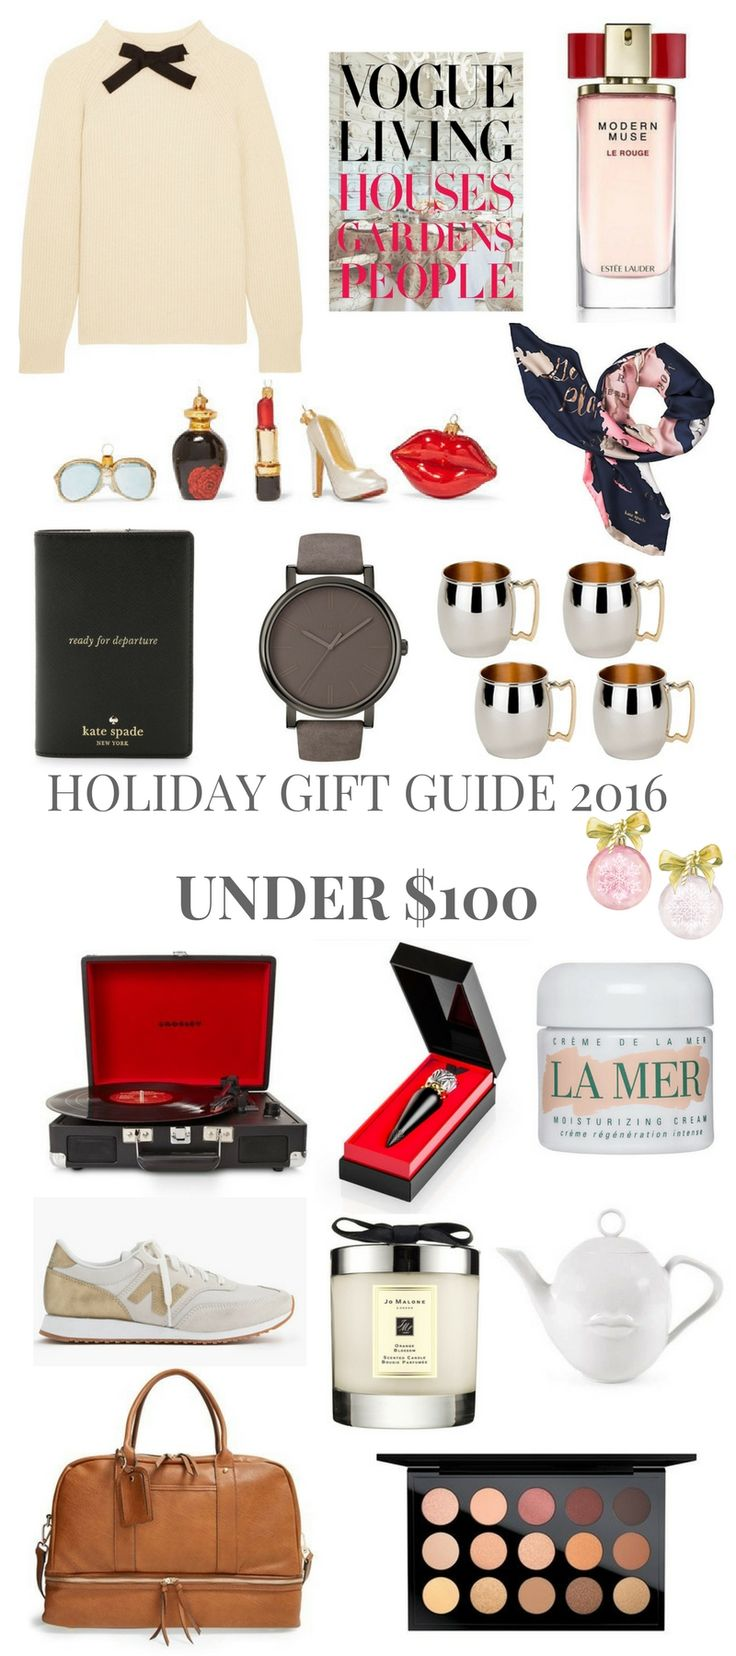 HOLIDAY GIFT GUIDE 2016 UNDER $100 // Shoegal Out In The World